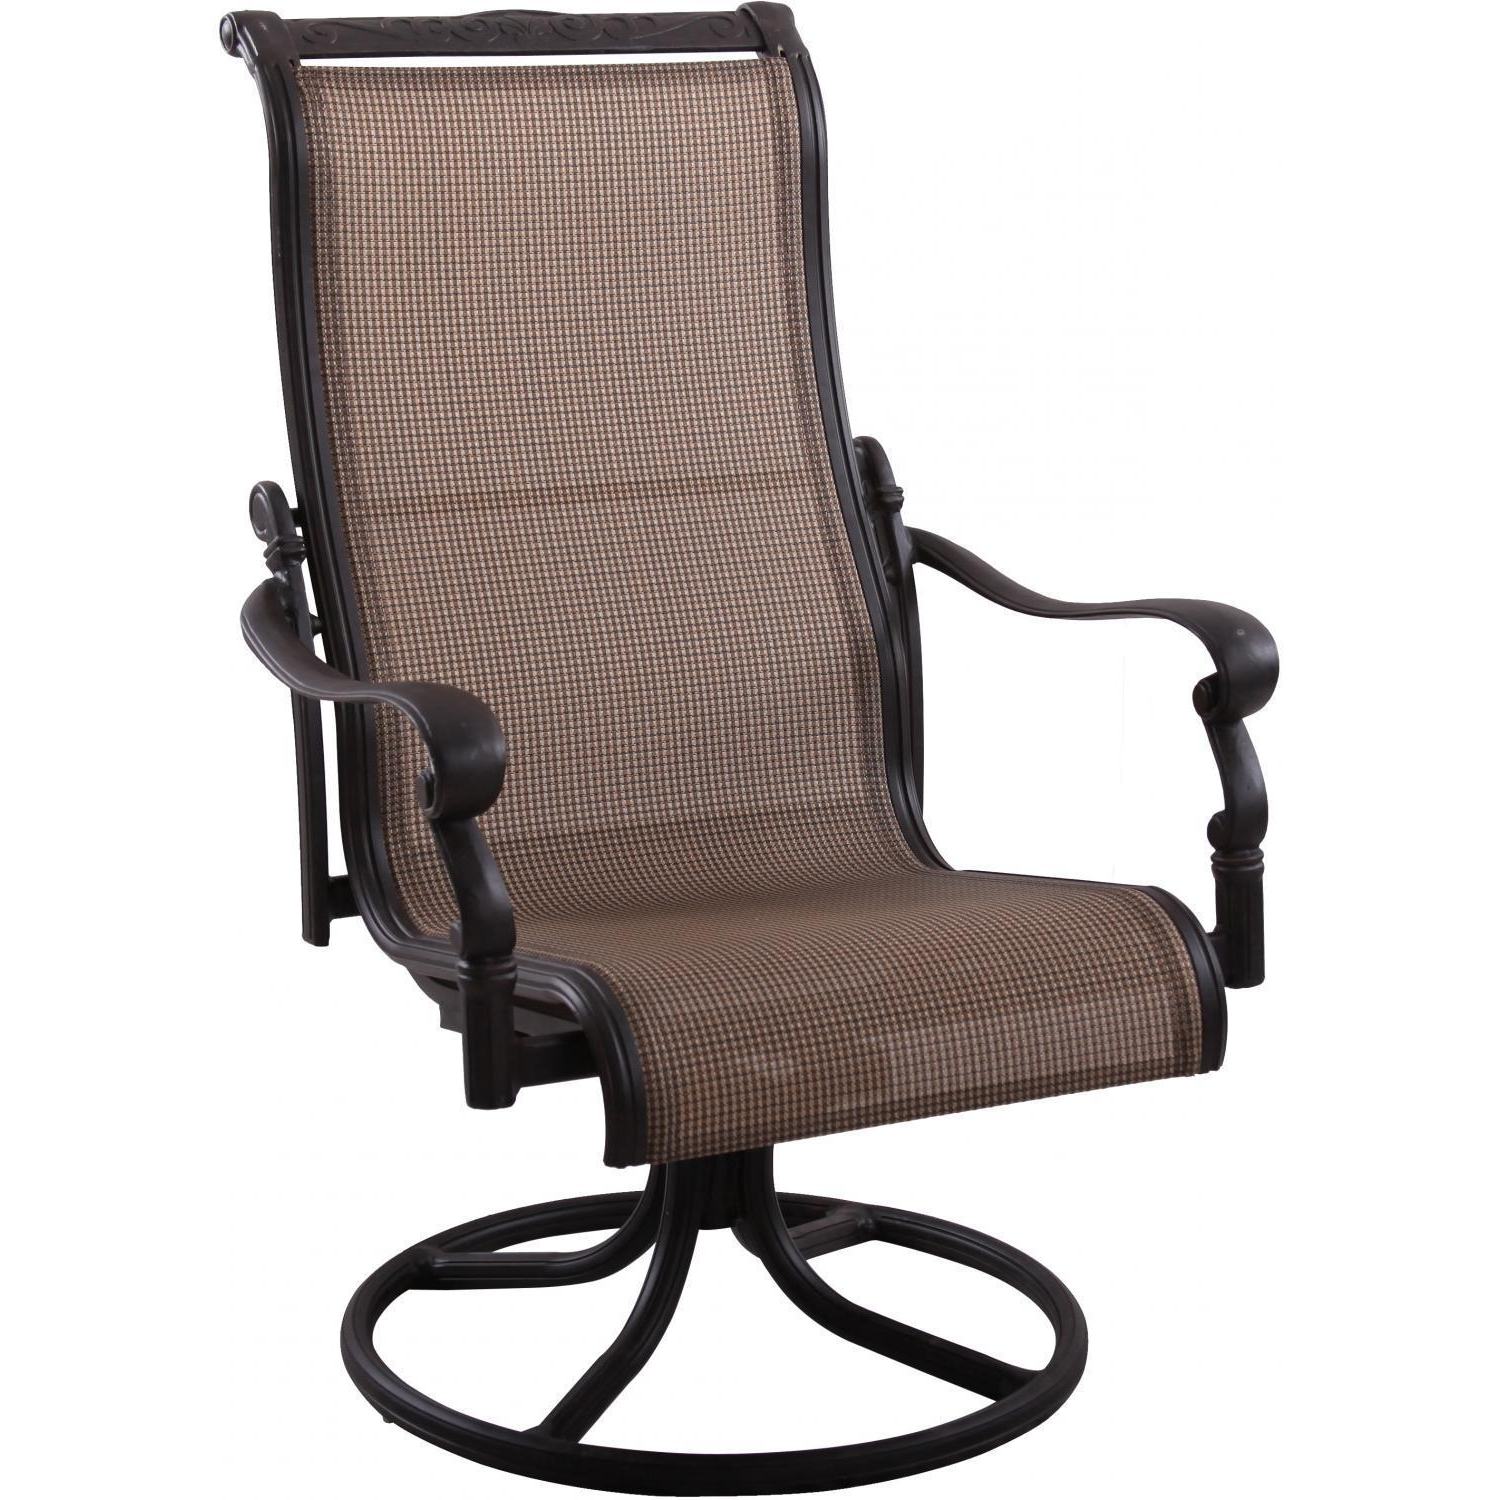 Patio Sling Rocking Chairs Throughout 2019 Darlee Monterey Sling Patio Swivel Rocker Dining Chair Tommy Bahama (View 6 of 20)